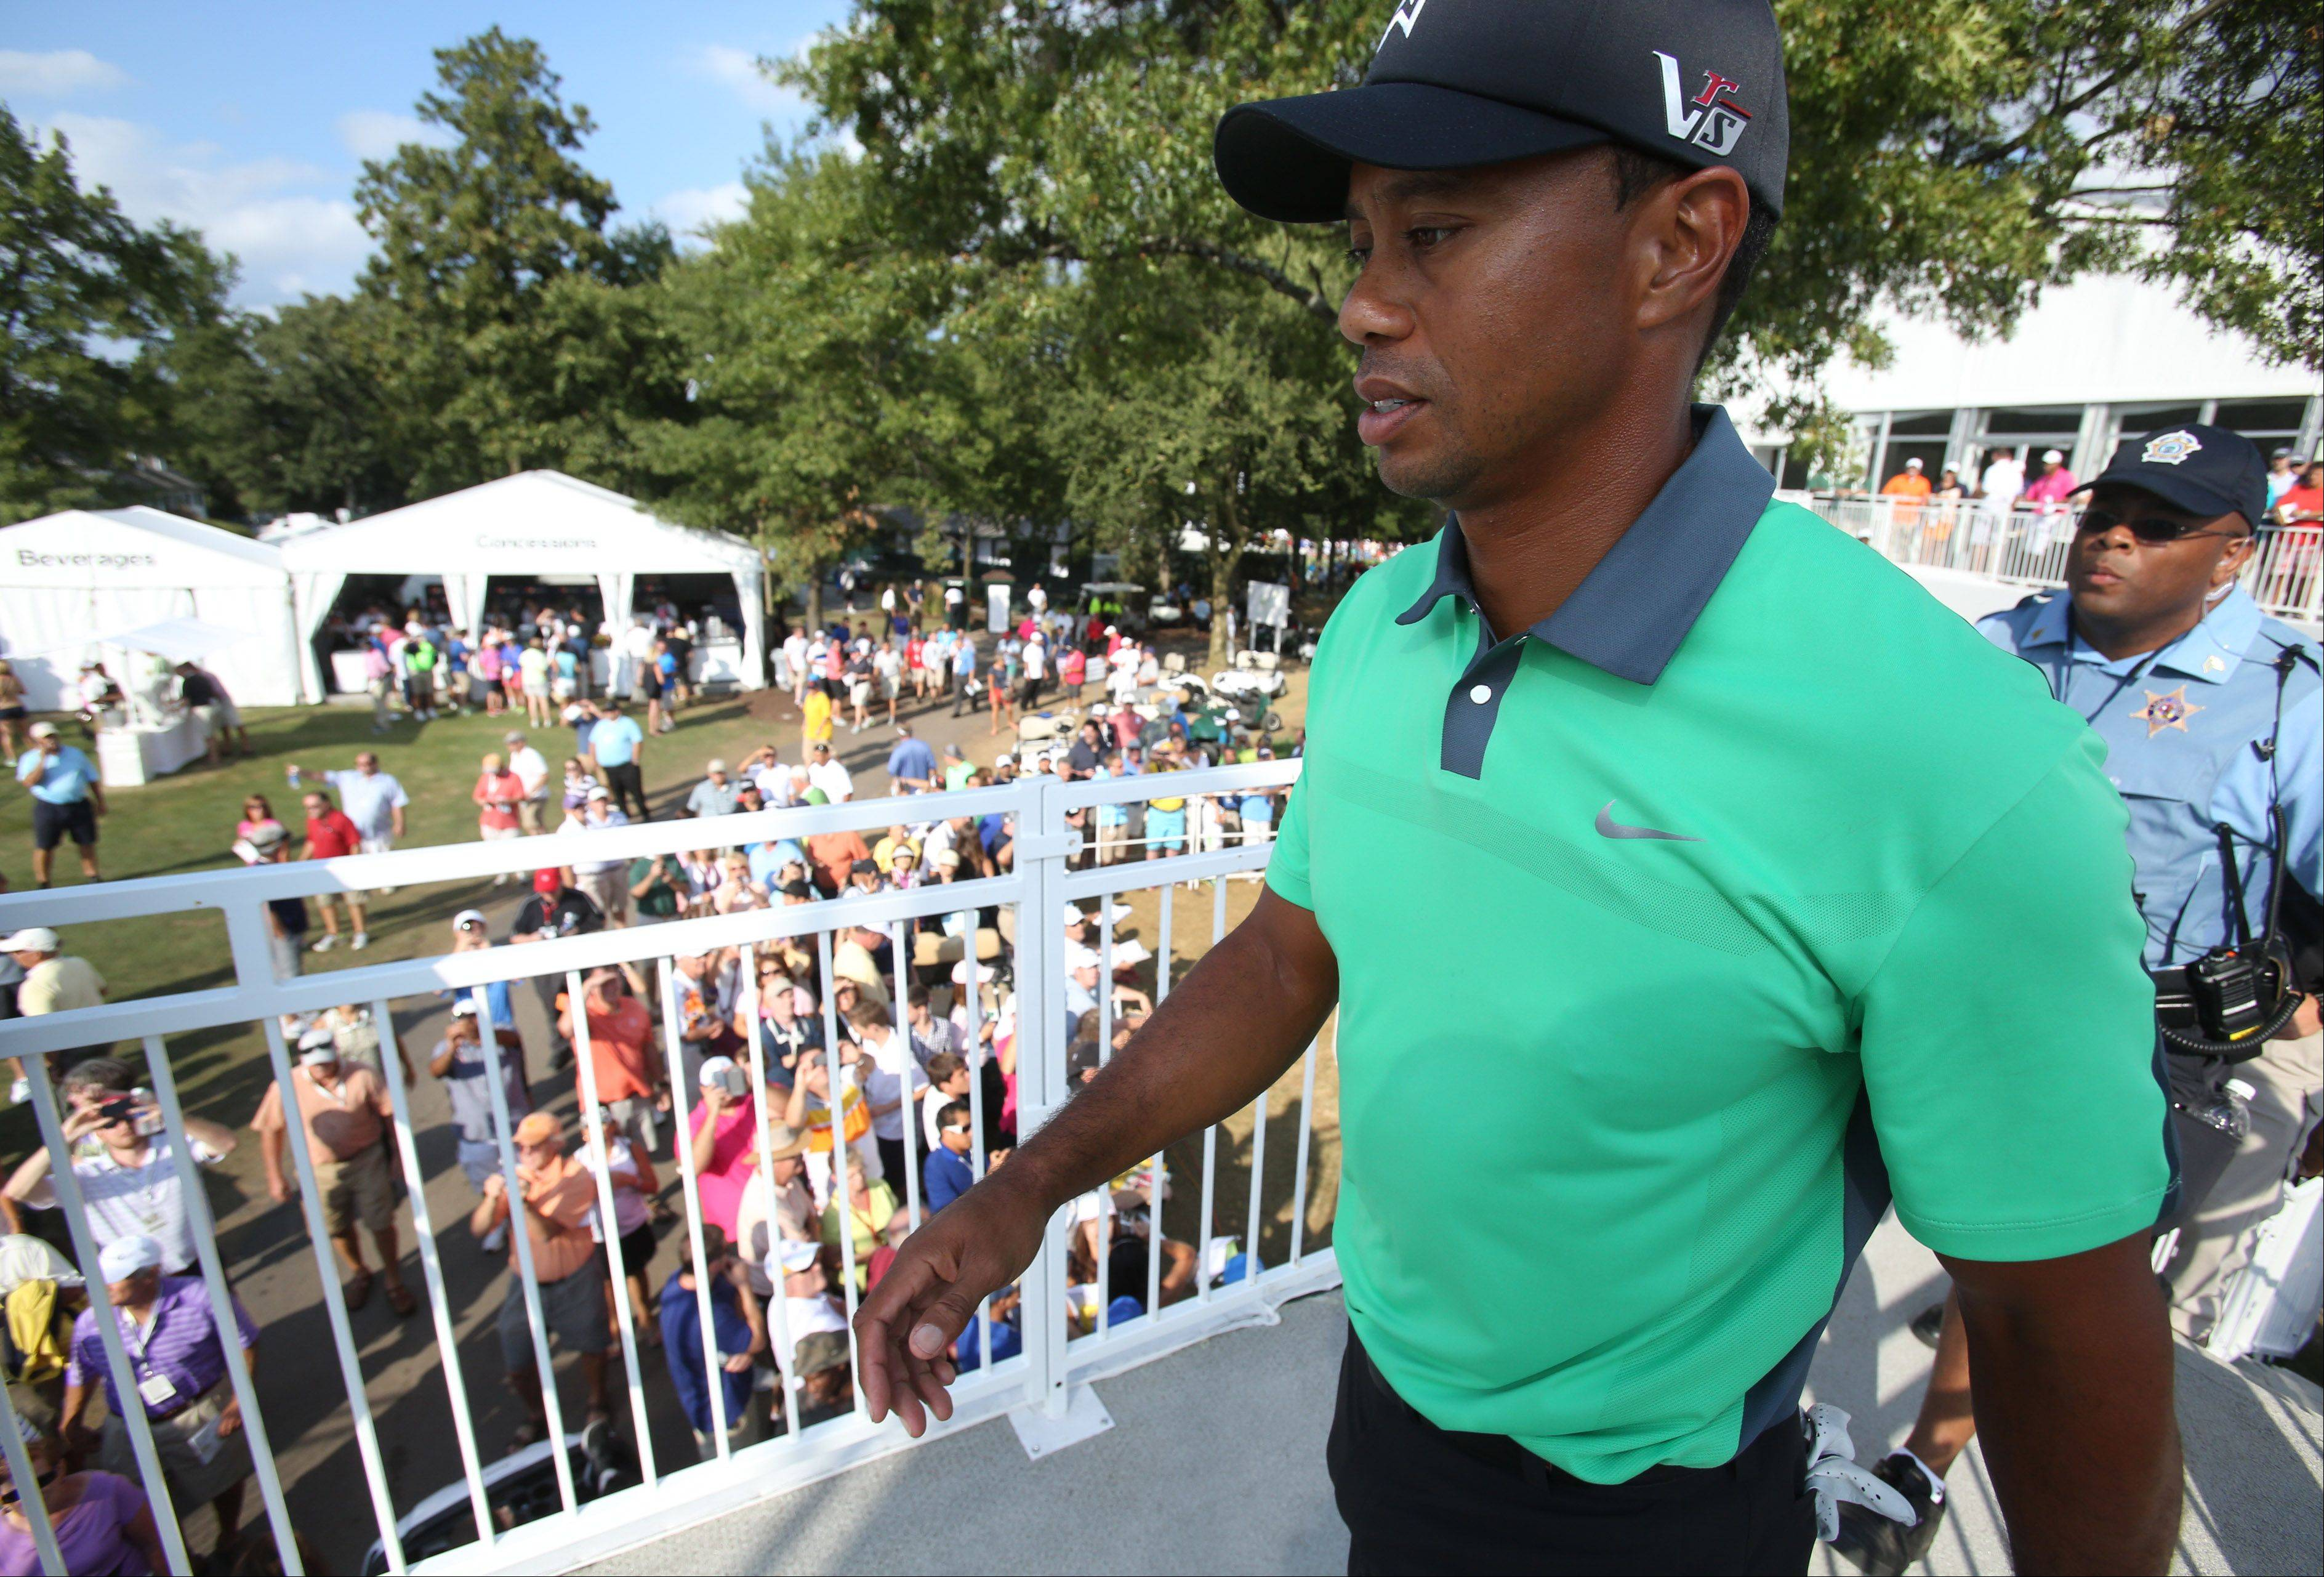 Tiger Woods' heads to the clubhouse after his round.